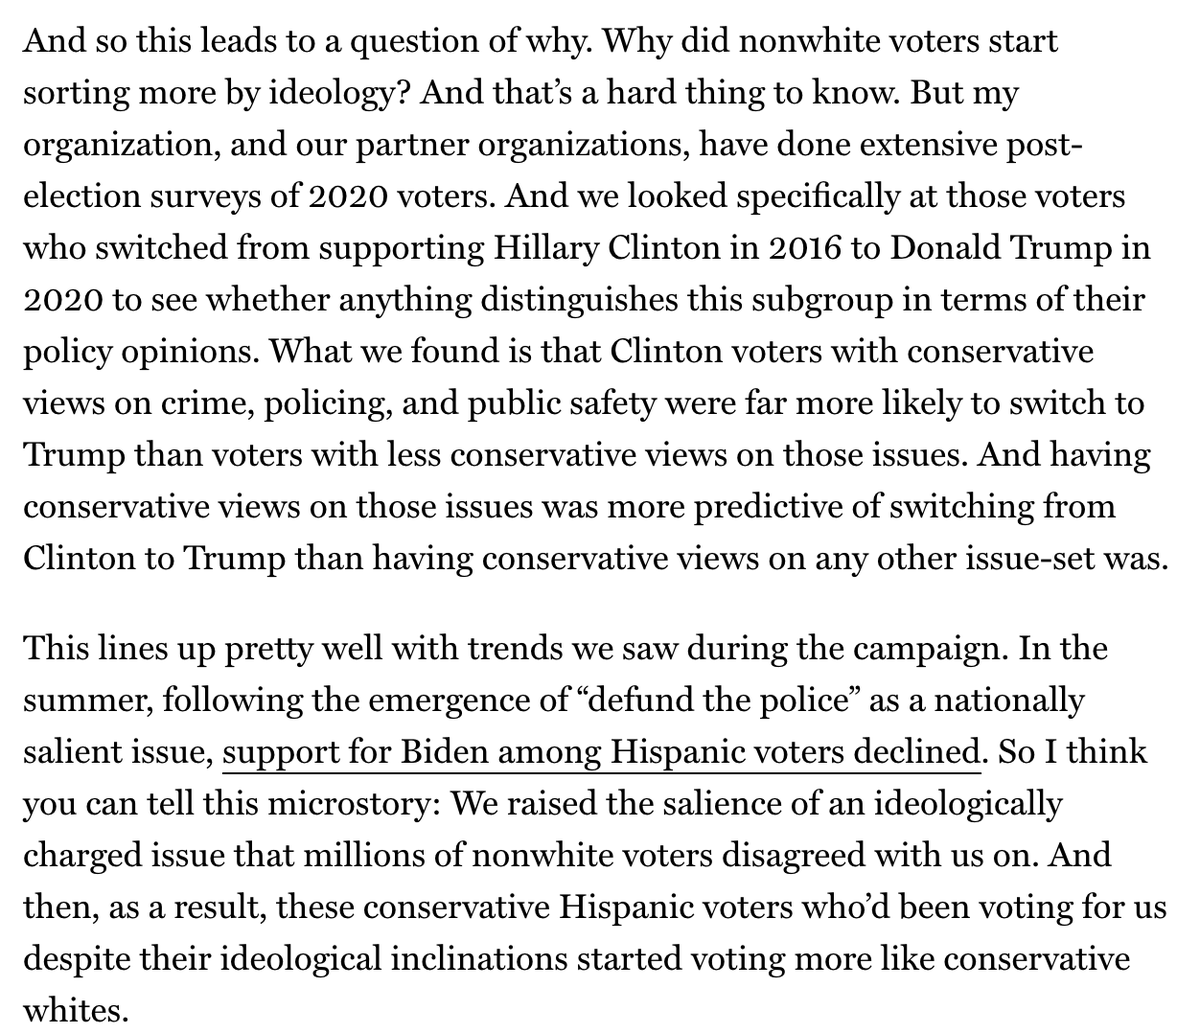 This whole thing is super interesting. Especially struck by the polling on police/public safety issues by race/ethnicity nymag.com/intelligencer/…